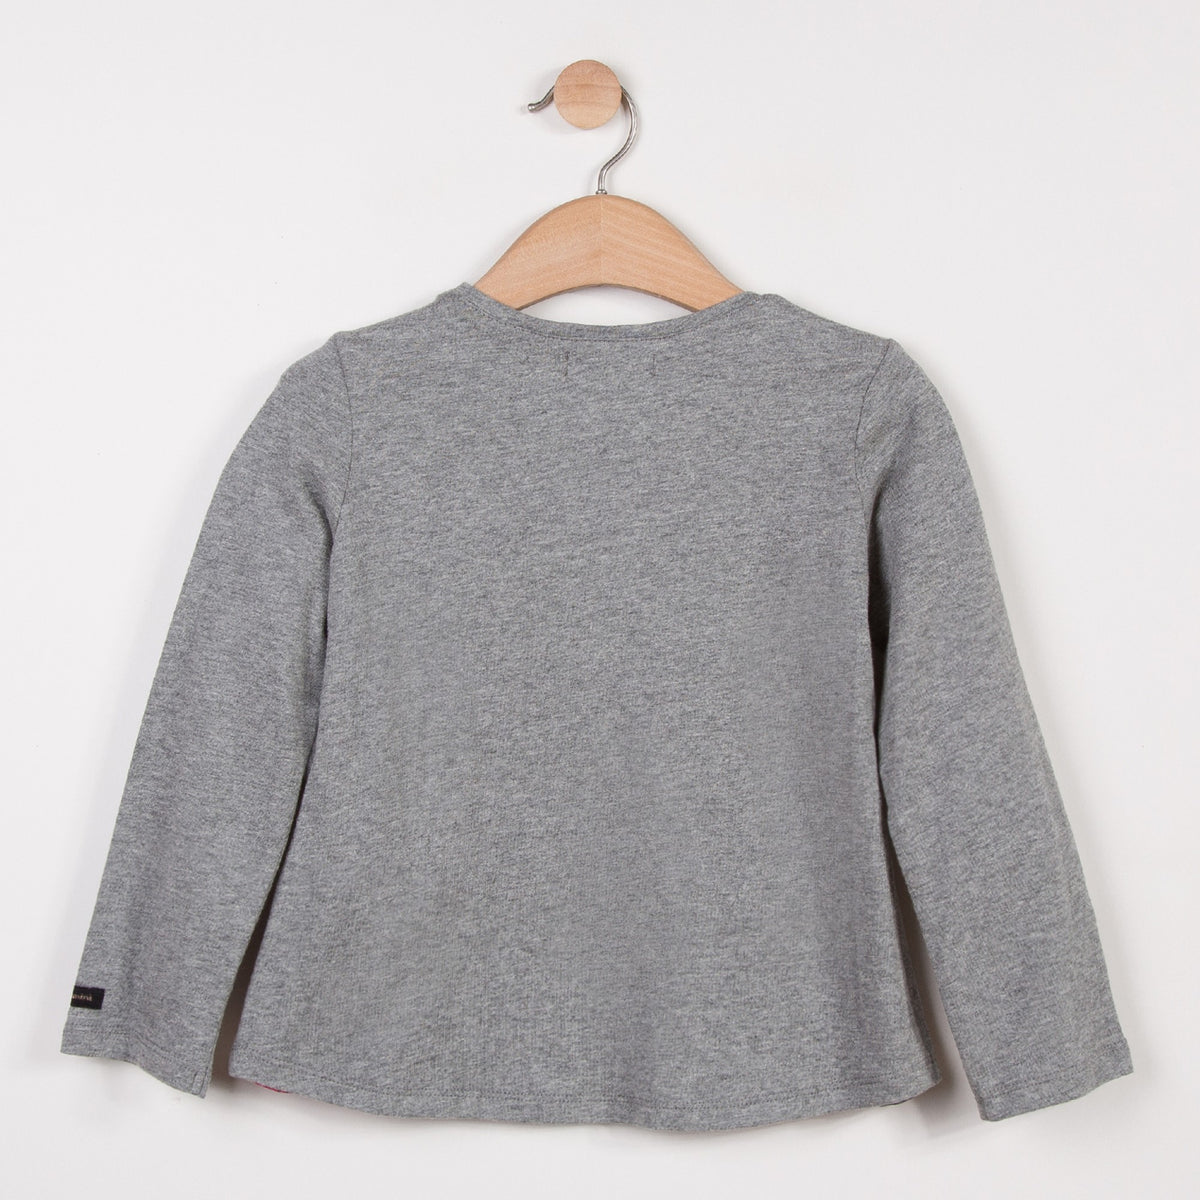 Long sleeved T-shirt for Girls in marl jersey with an applied motif of girl. Round neck with trim, fastened by pearly press studs at the shoulder. By Catimini.